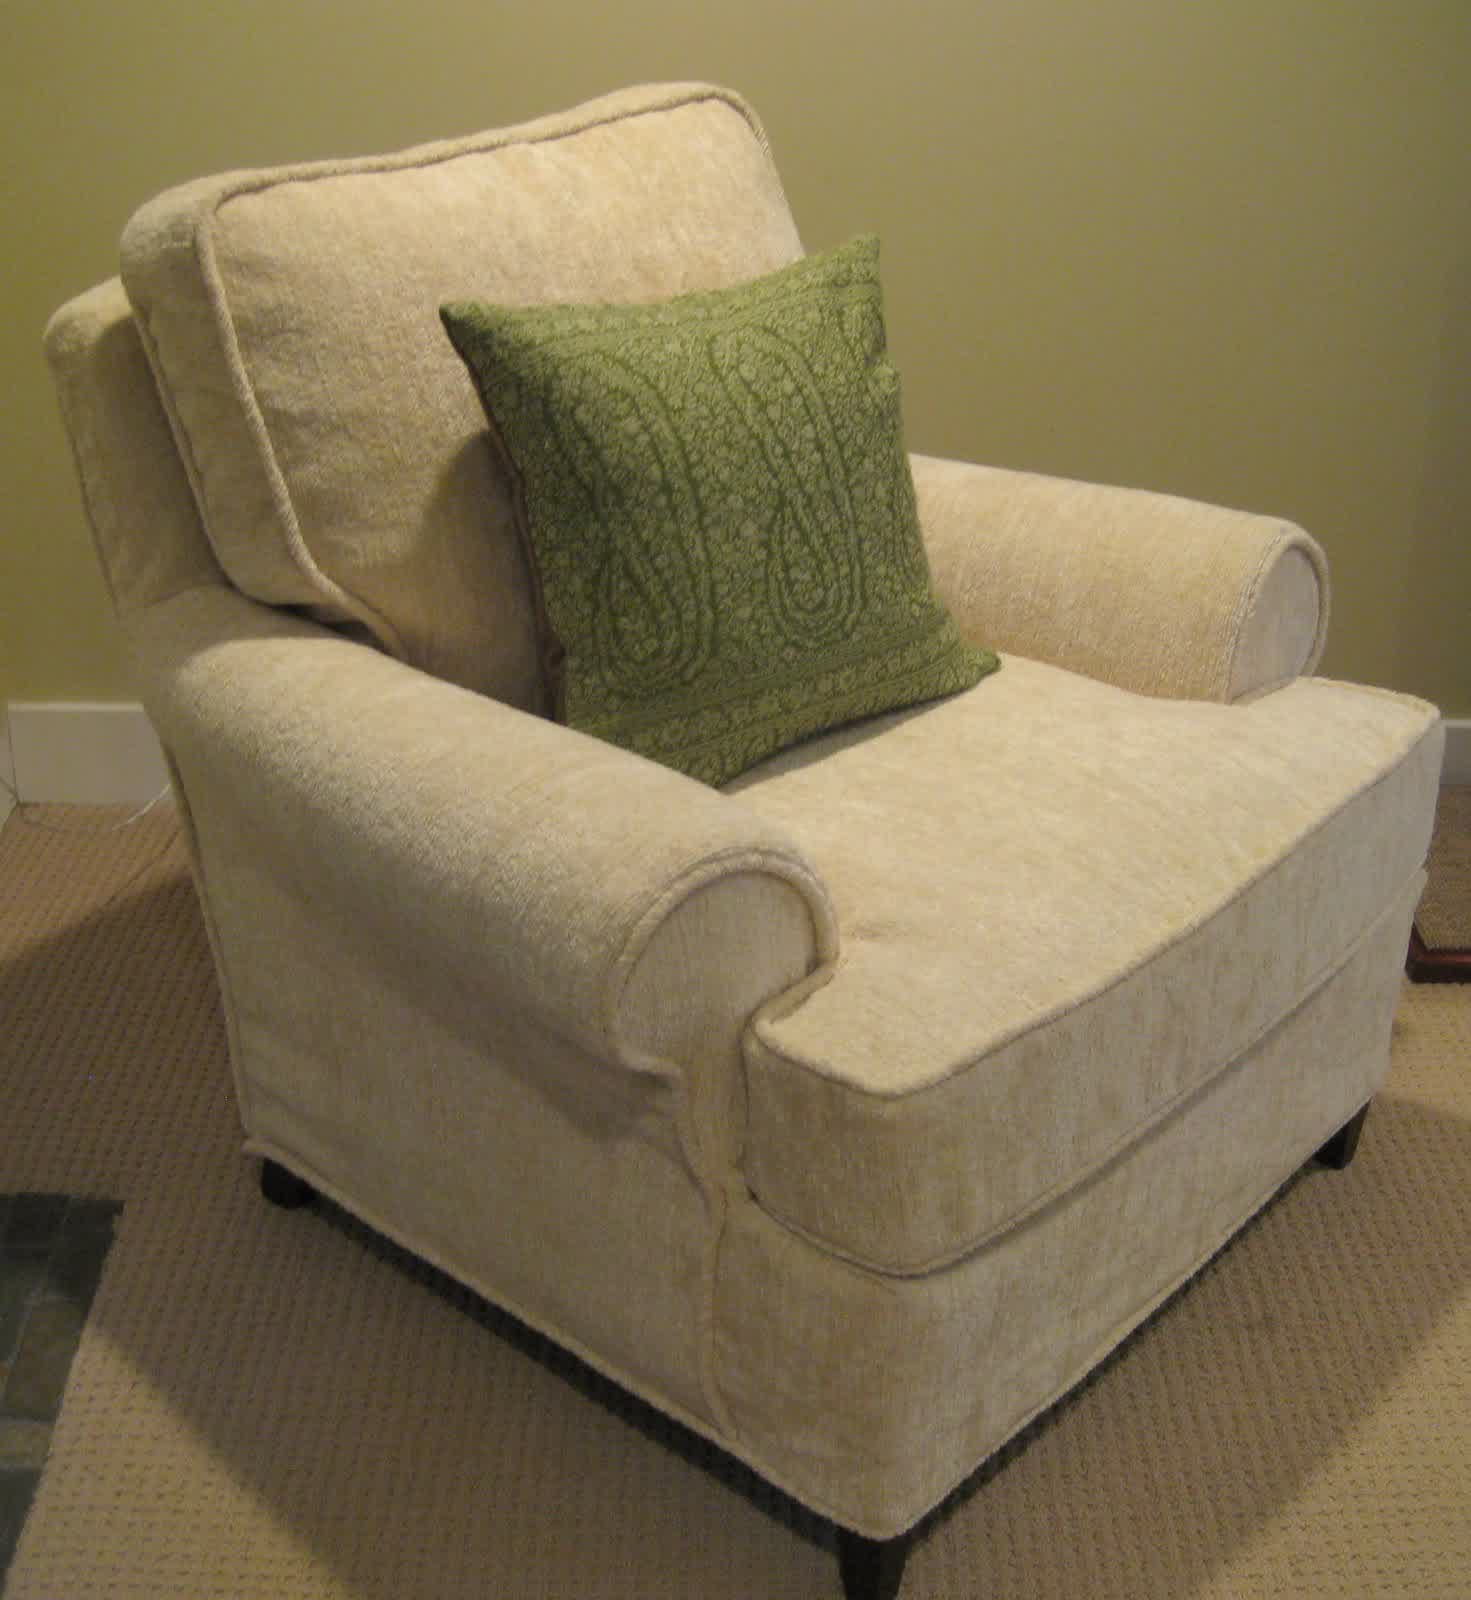 White Chair Slipcover Add Club Chair A Whole New Look Only With Club Chair